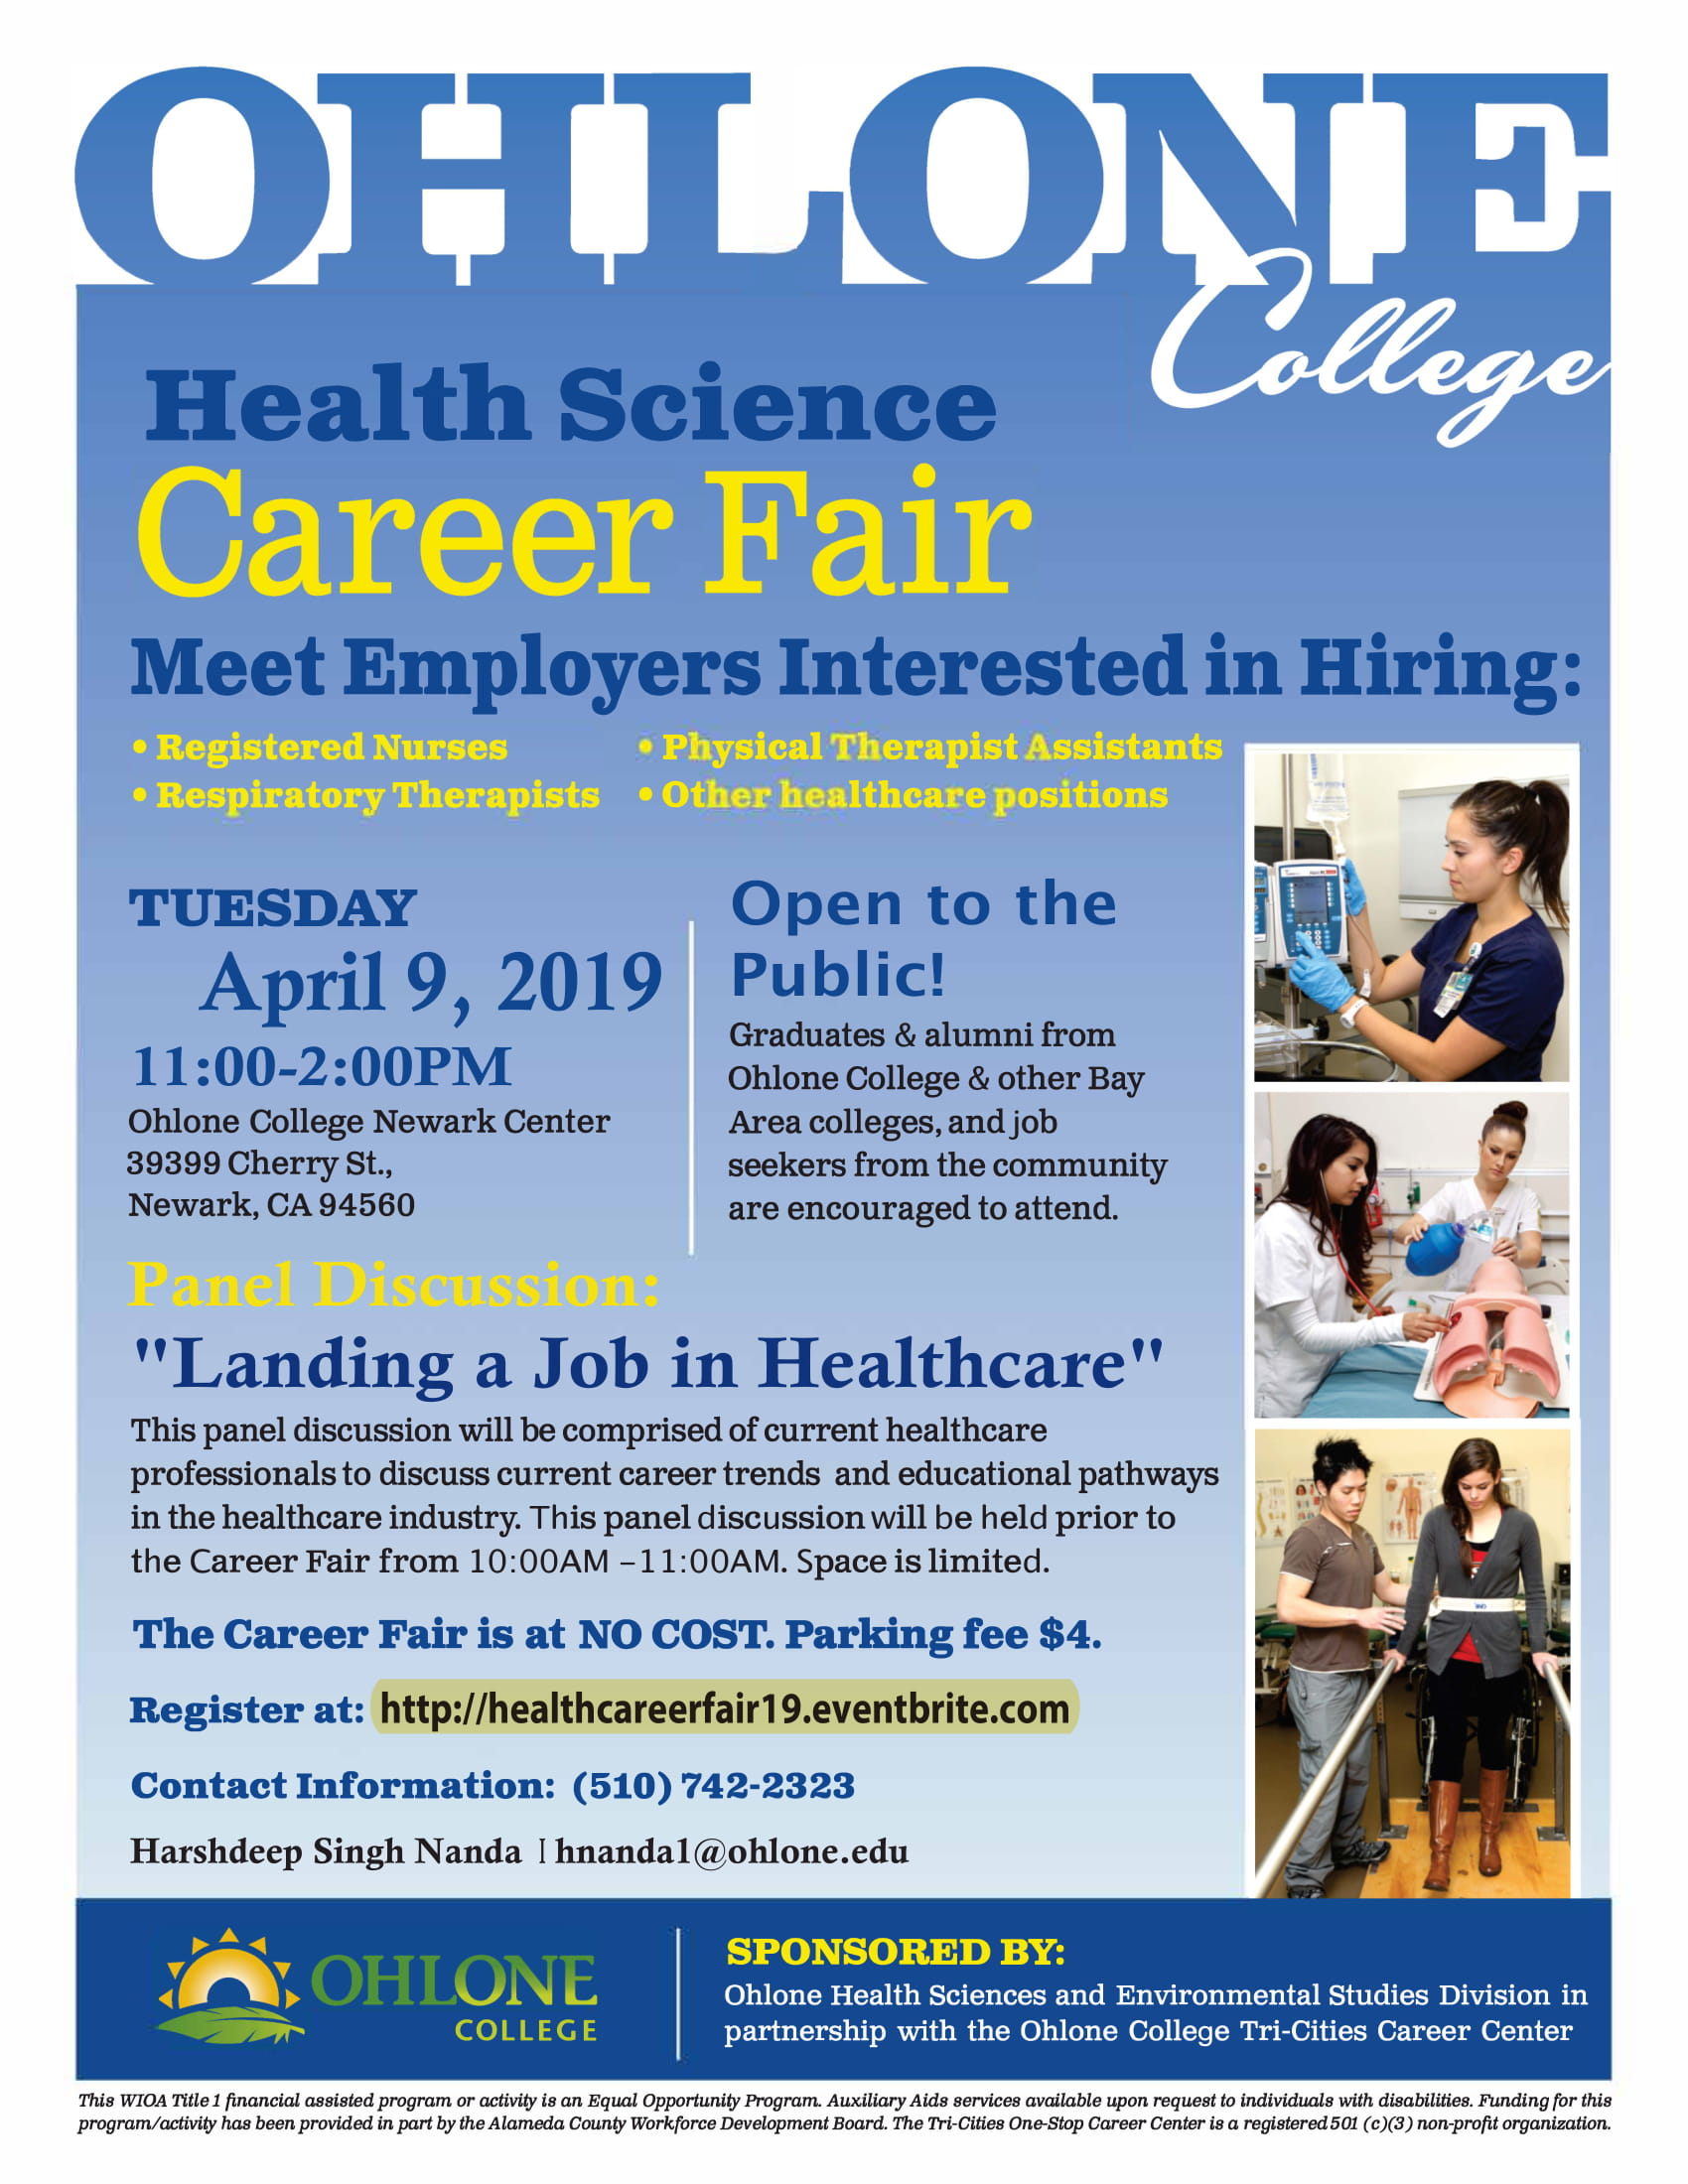 Ohlone College Health Science Career Fair 2019 Tickets Tue Apr 9